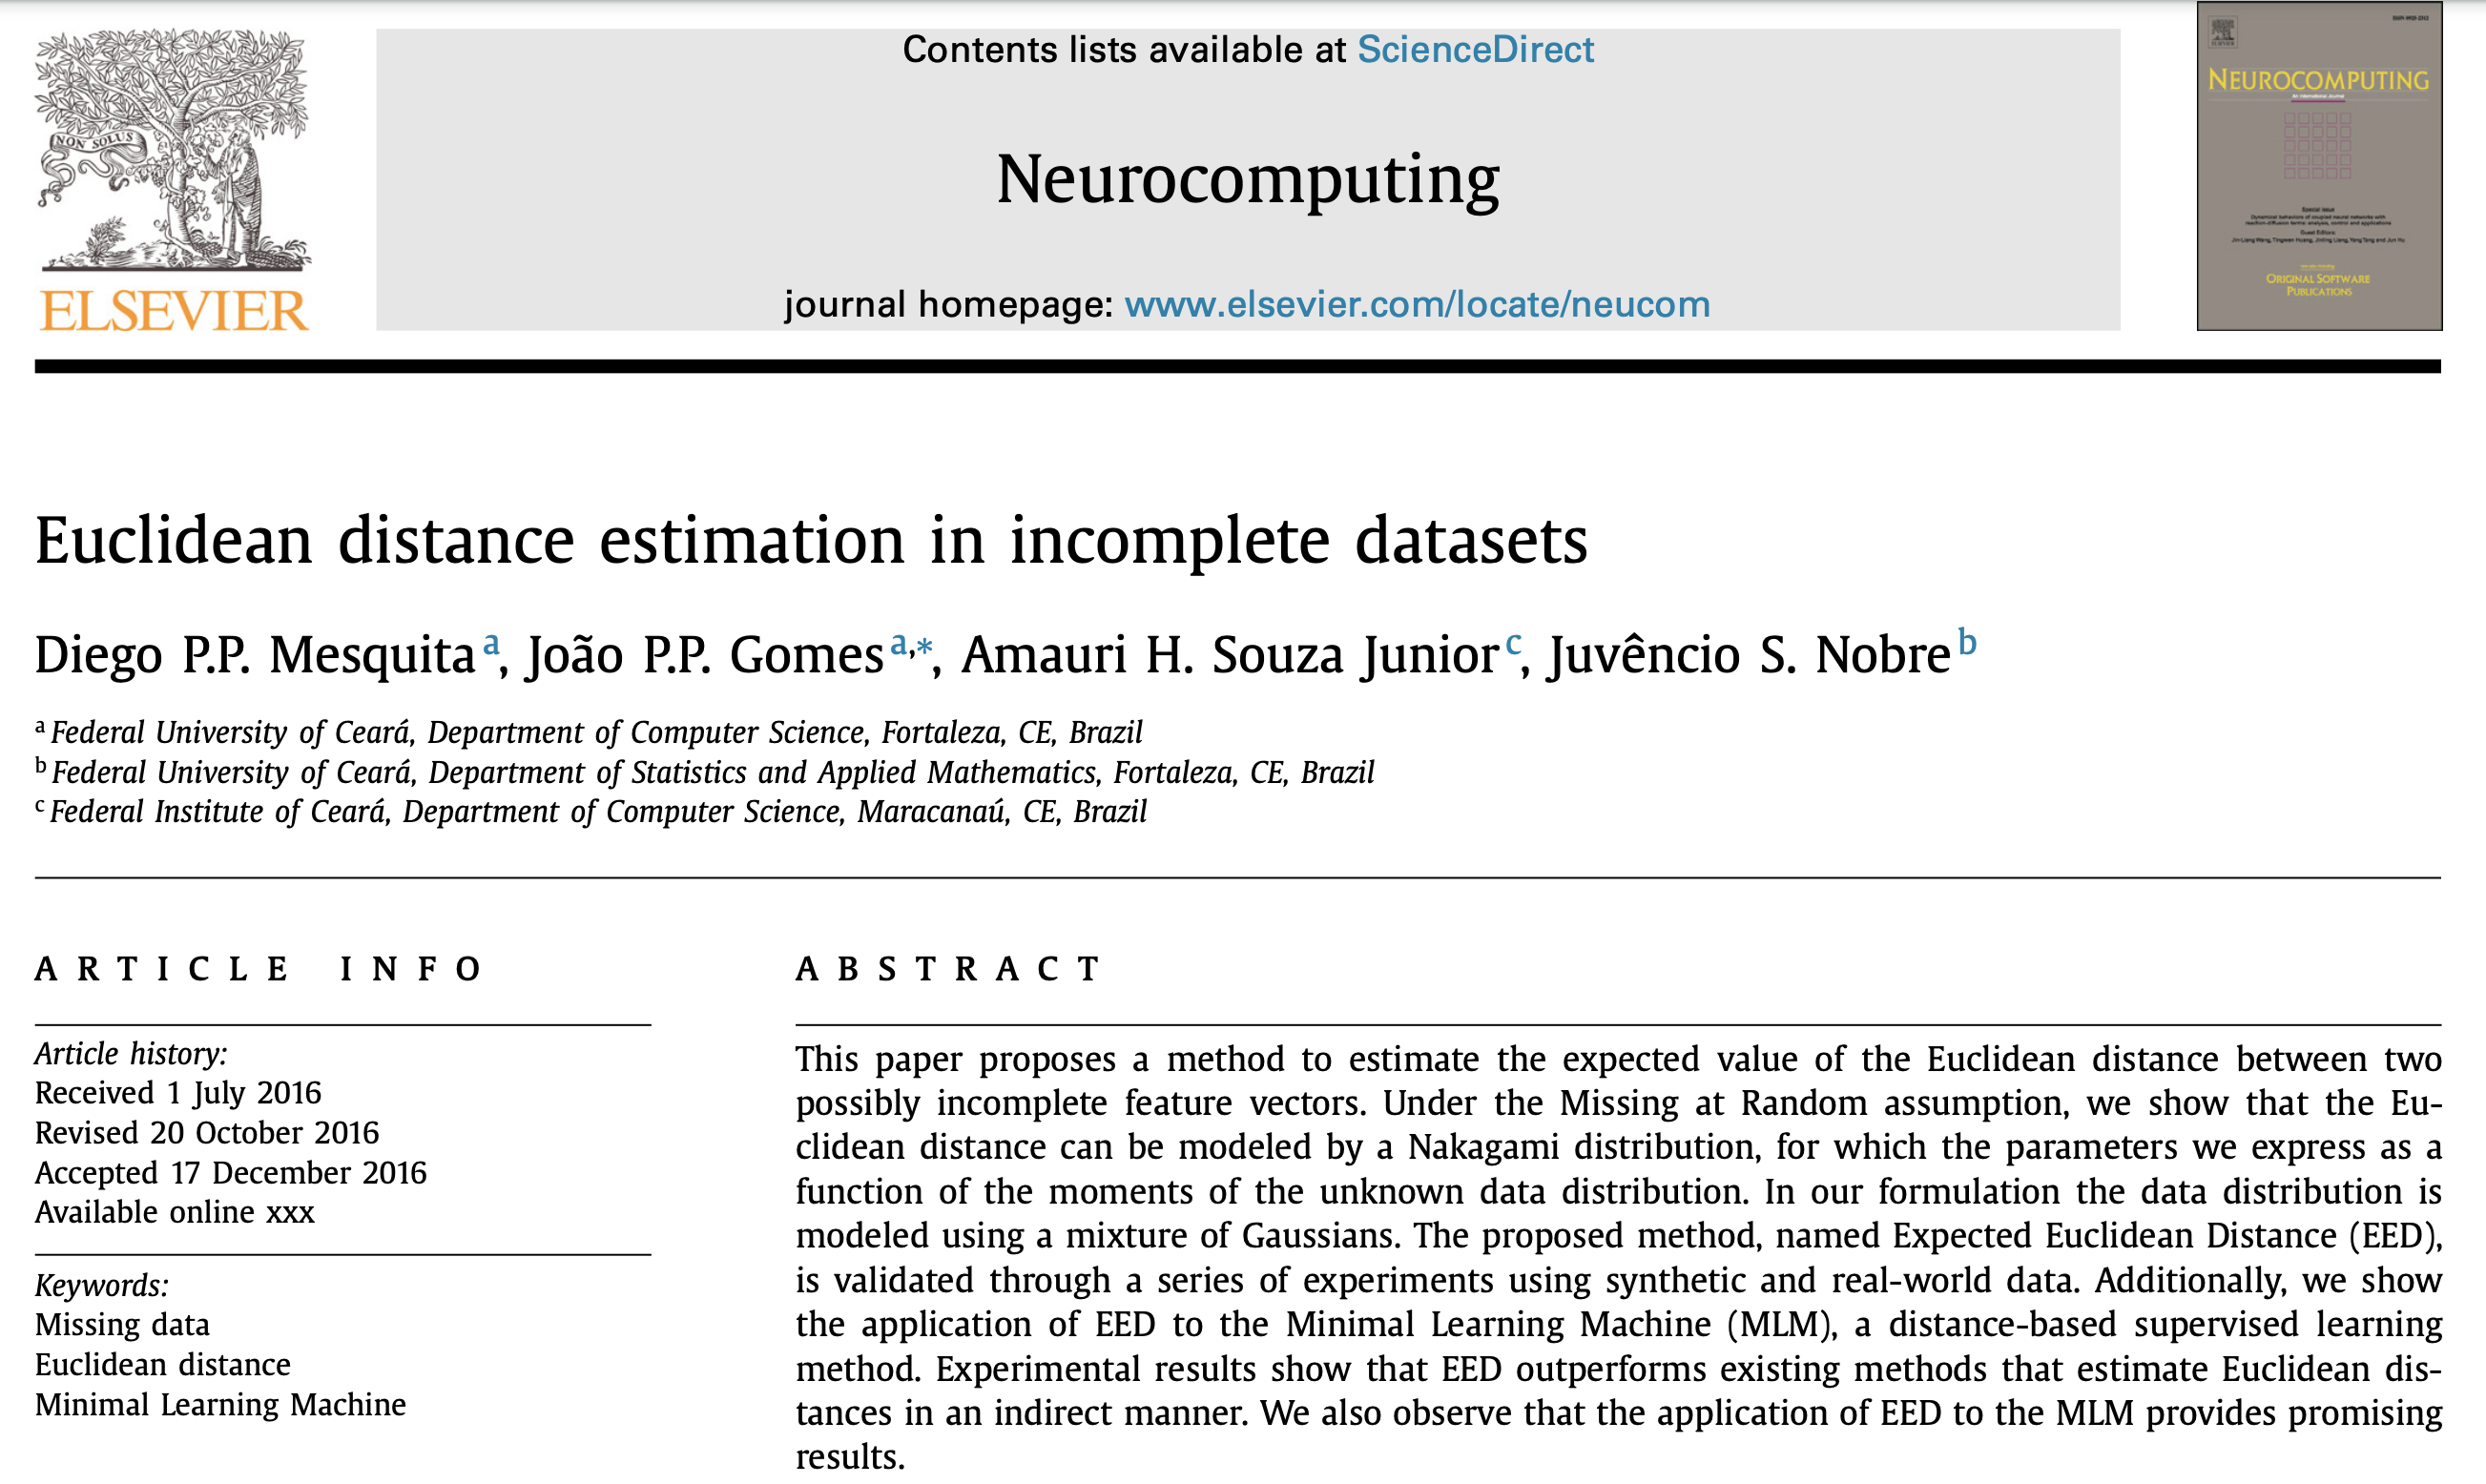 Euclidean distance estimation in incomplete datasets